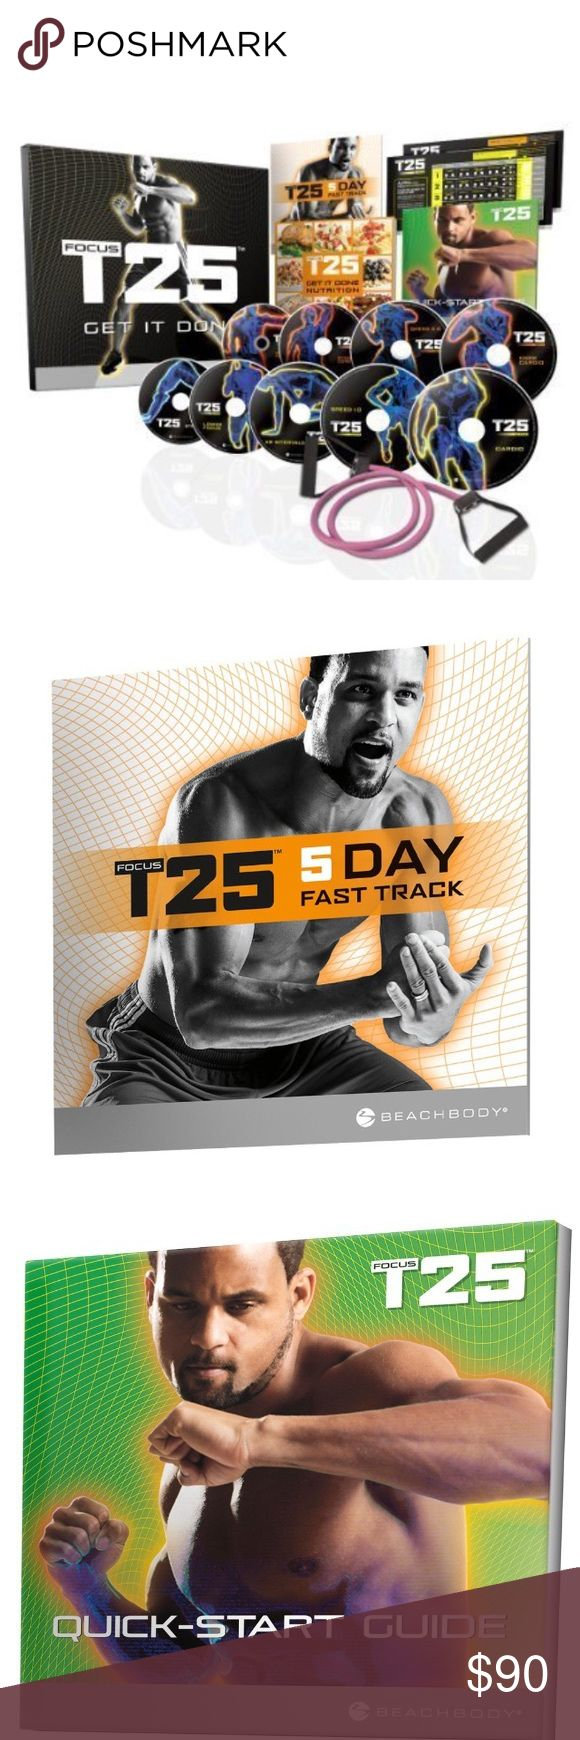 Shaun T25 Workout DVD Program Get It Done 25 Mins NWOT I Bought for myself but had surgery during this time and was told to not exercise by my doctor 😕. So it's still new in the box!!📦 Workout DVD Program—Get It Done in 25 MinutesFeatures T25. Includes 11 nonstop 25-minute workouts on 9 DVDs, Quick-Start Guide, Nutrition Plan, Workout Calendars, B-LINES Resistance Band (15 lb.), and 5-Day Fast Track Guide (located inside shrink wrap)Major studies show that 30 mins of exercise is as…